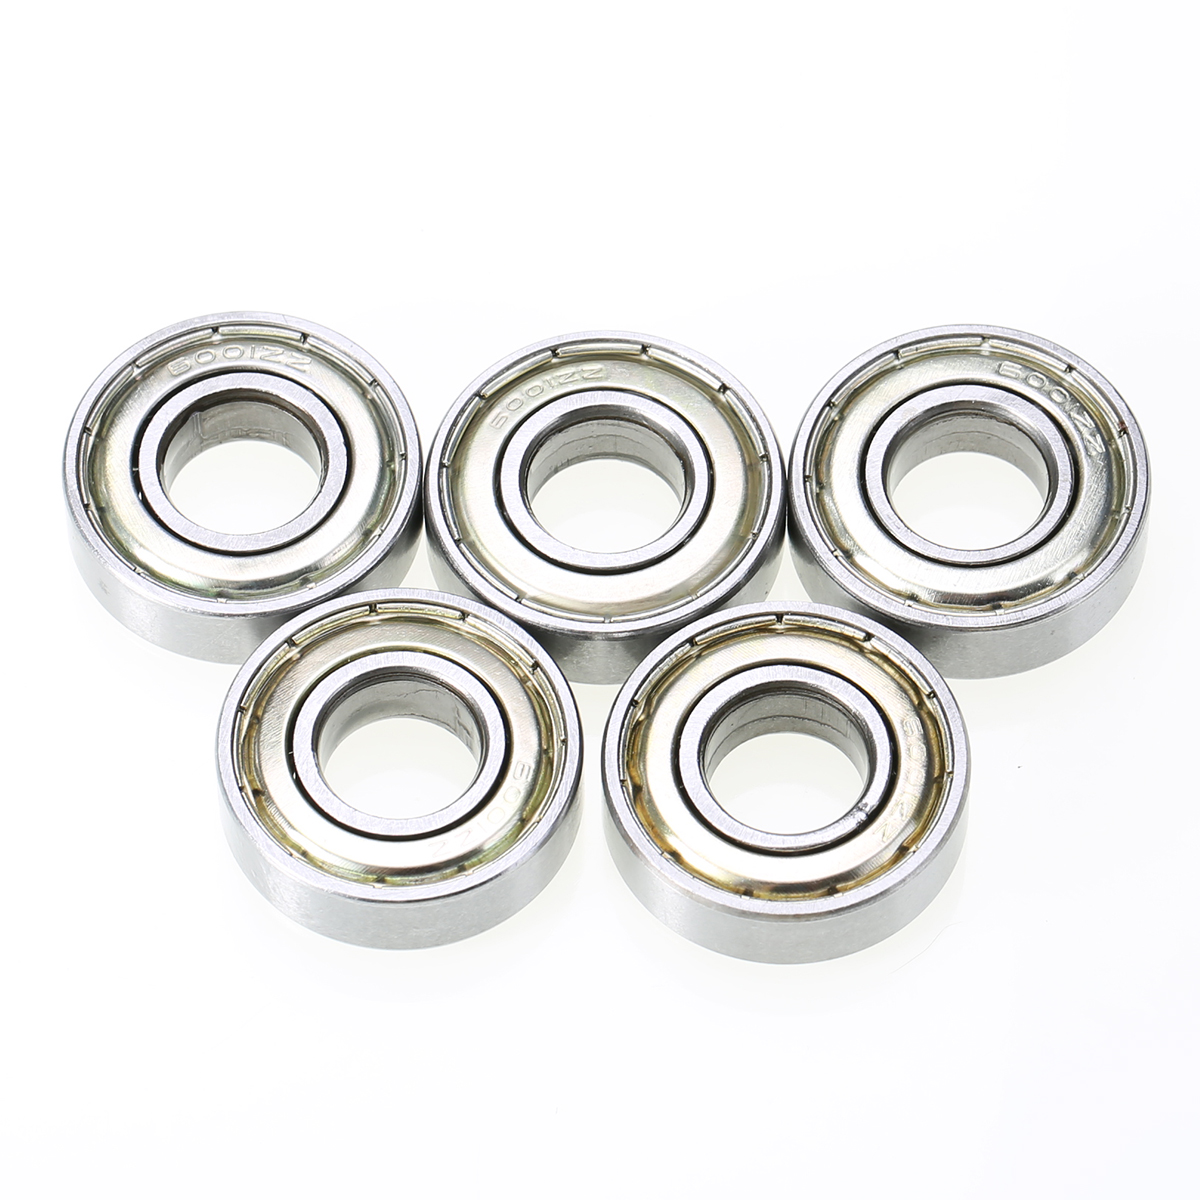 5 Pieces 6001ZZ Ball Bearings Shielded Deep Groove Radial Ball Bearing 12mm * 28mm * 8mm For Electric Motors Conveying Mayitr 5pcs lot f6002zz f6002 zz 15x32x9mm metal shielded flange deep groove ball bearing